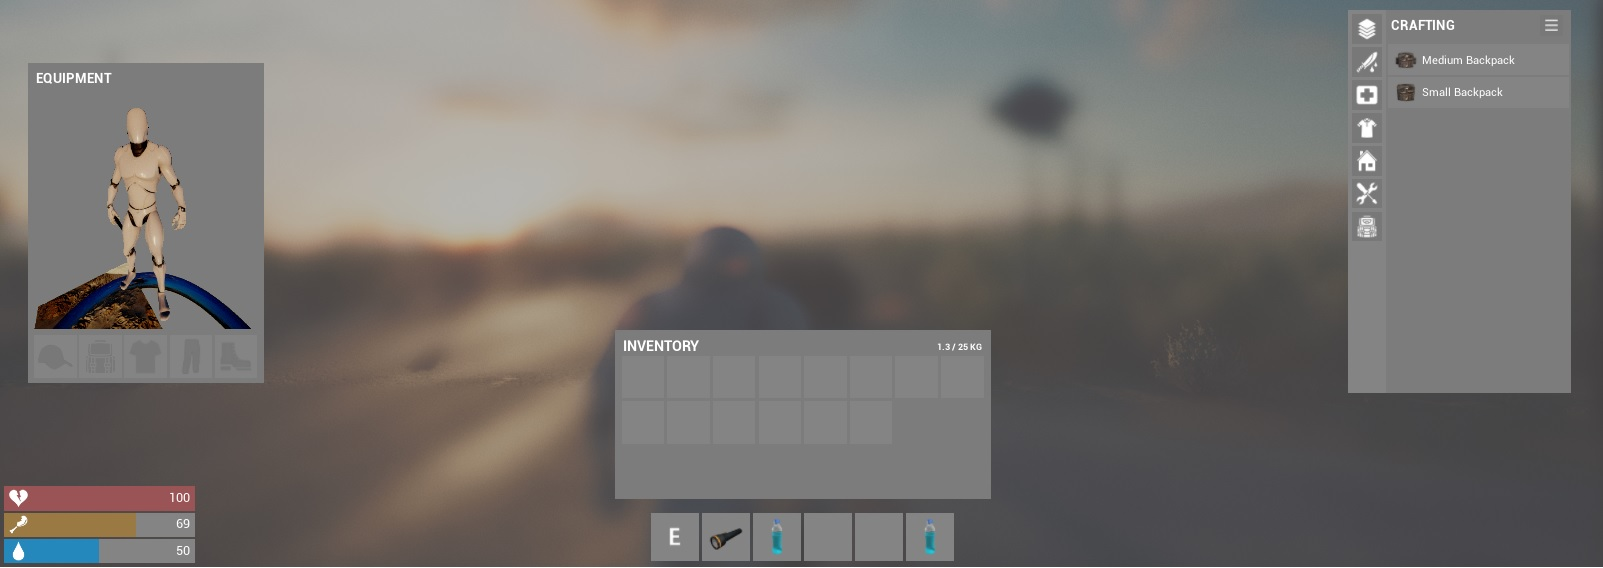 inventory and crafting